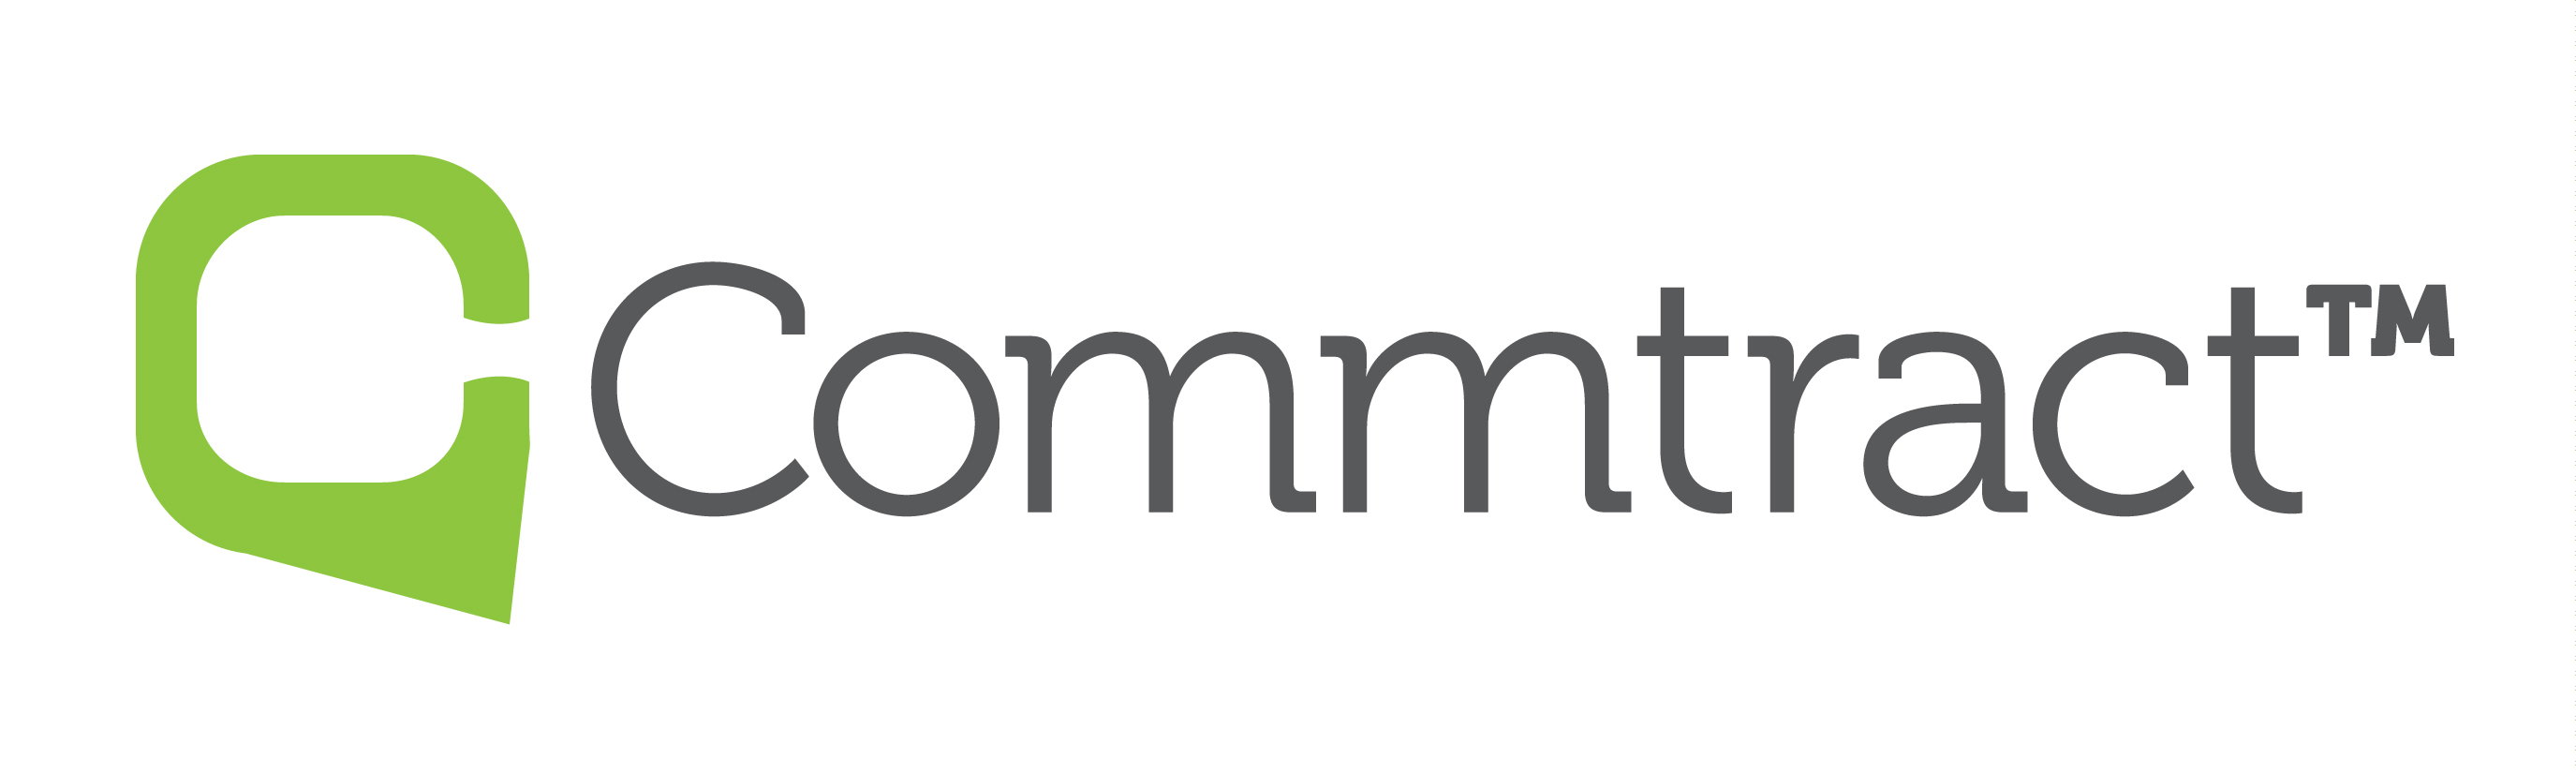 Commtract logo